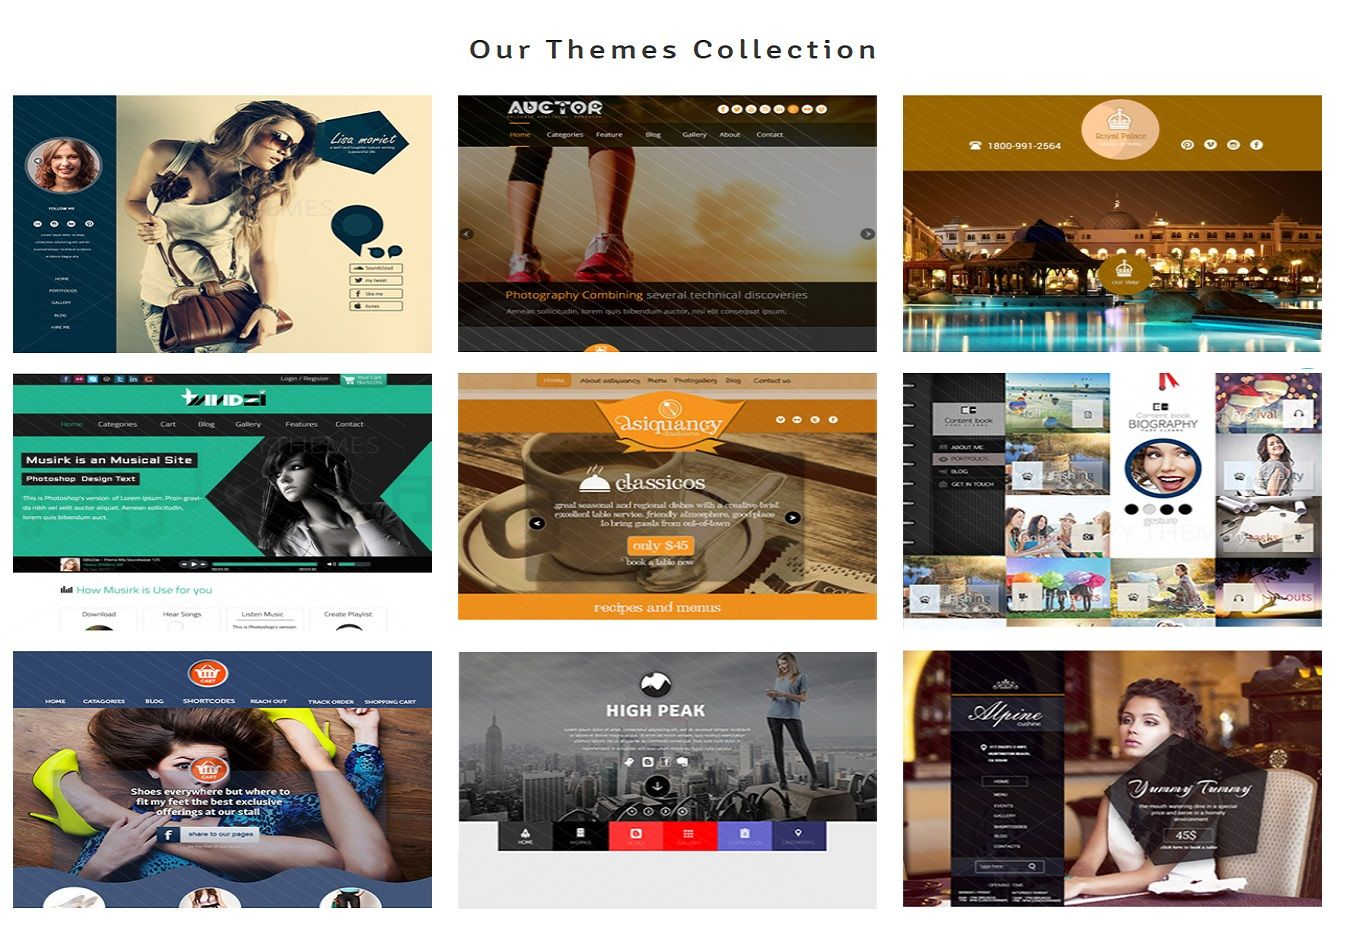 Themes Collection